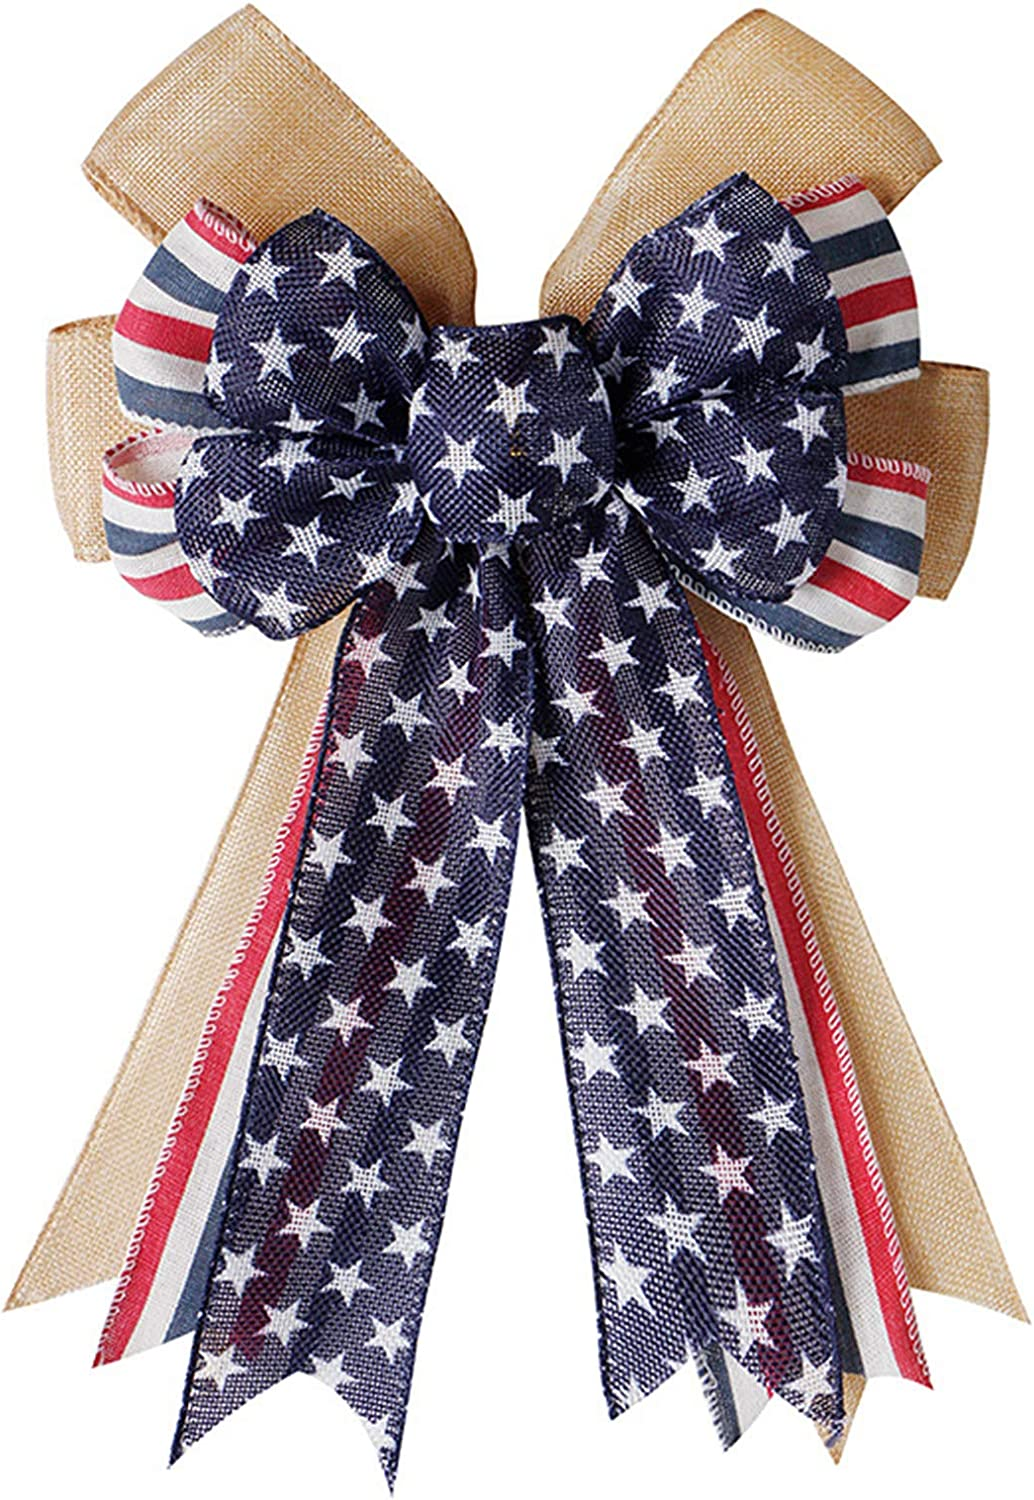 Patriotic Wreath Bow Burlap American Stripes Stars Large Tree Topper Bow Gift Bows for 4th of July Memorial Day Labor Day Veteran's Day President's Day Independence Day Party Favors Decorations